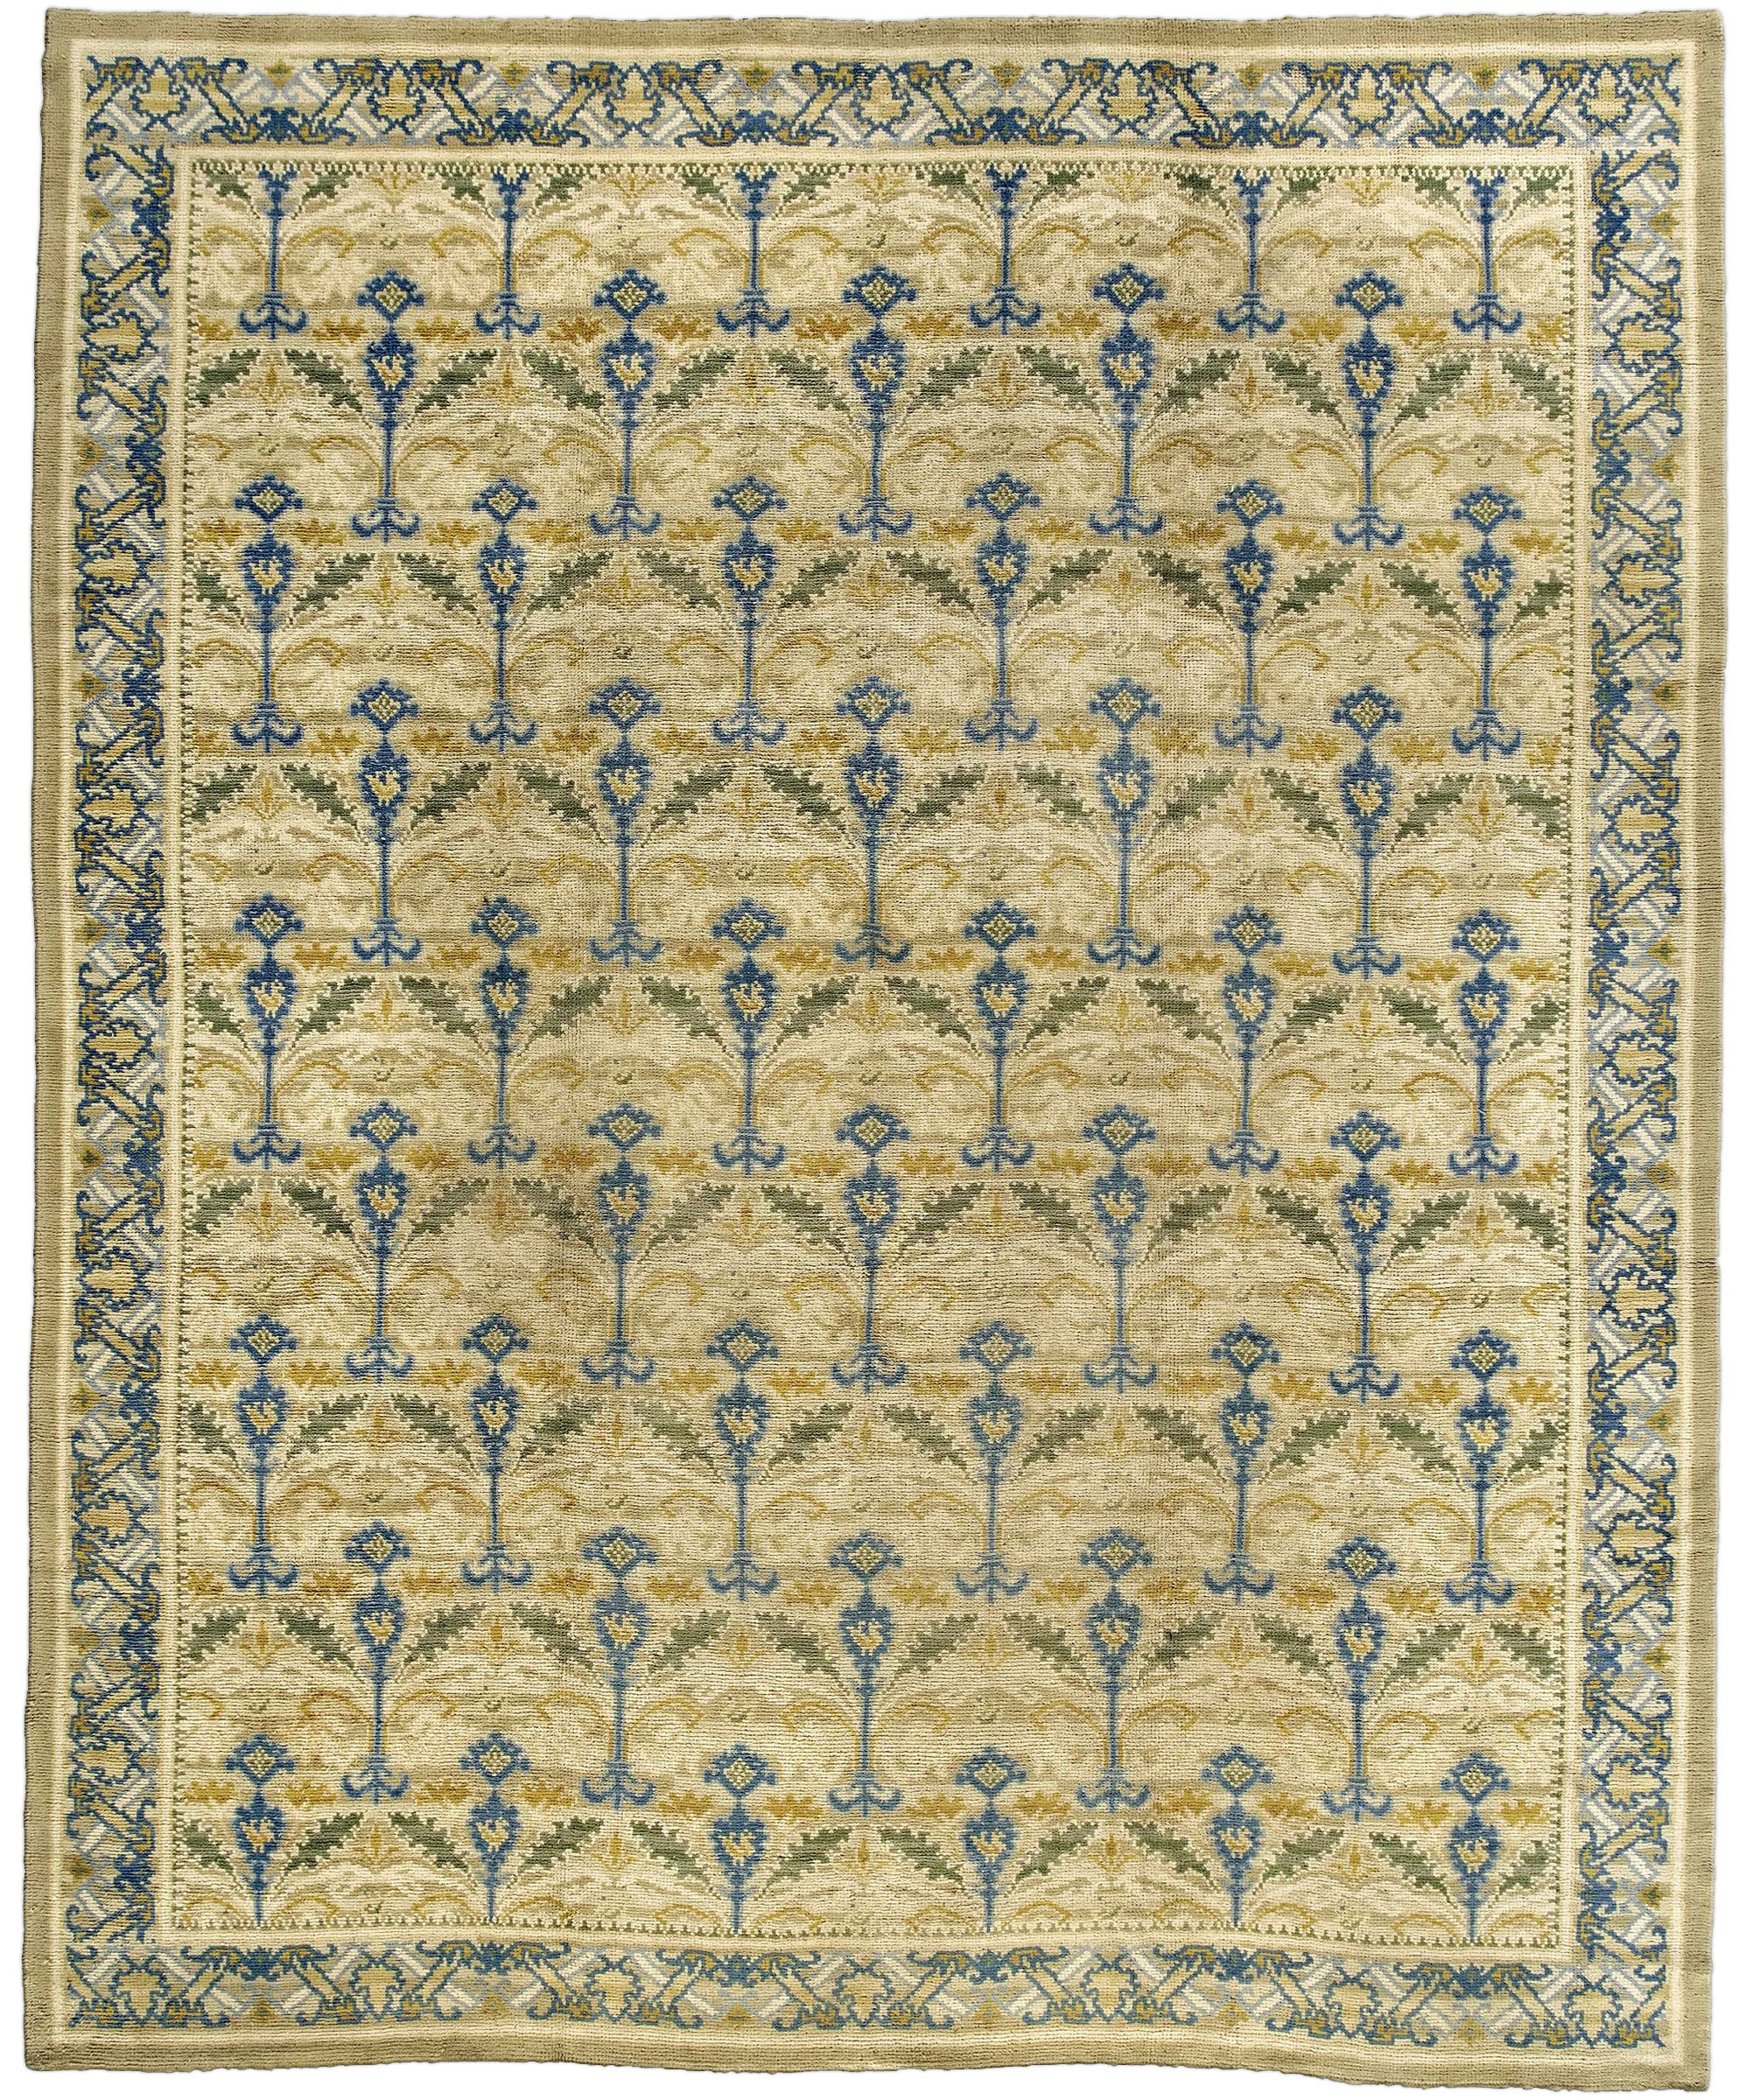 Spanish Rugs Area Carpets For Sale Antique Vintage Style